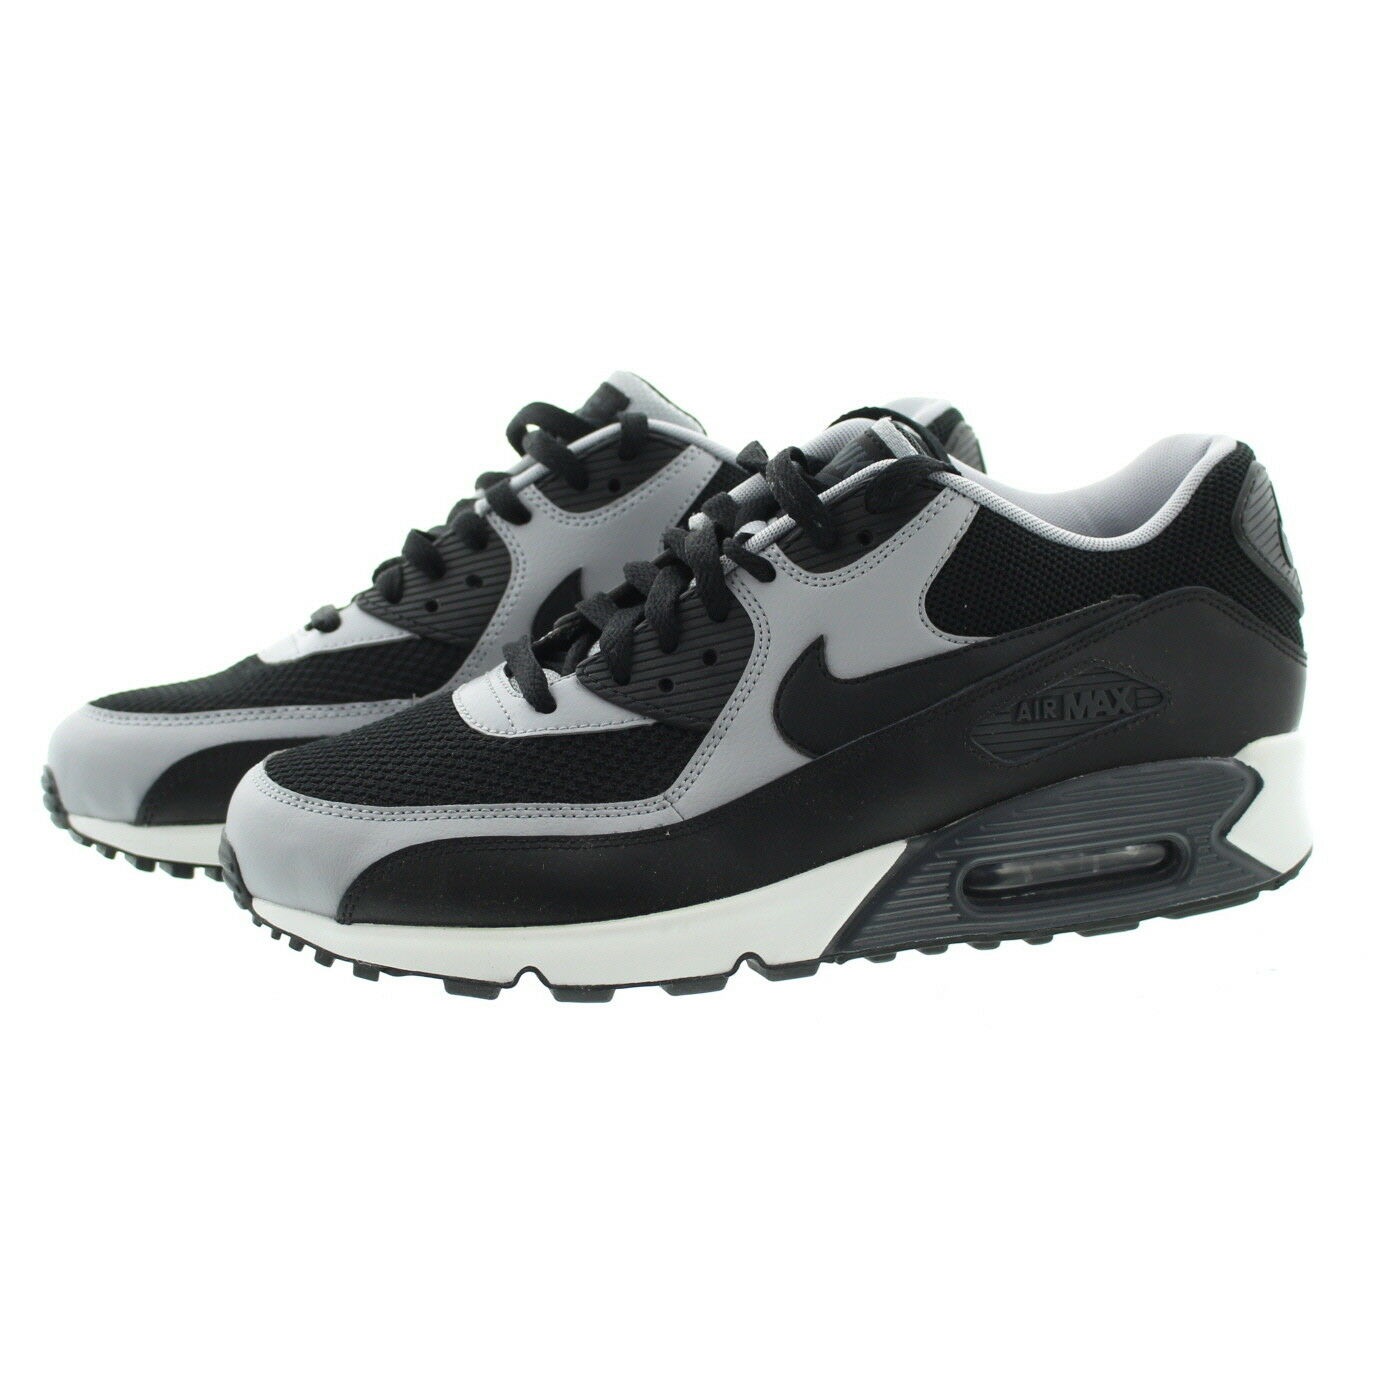 best website e4653 6a592 ... Nike 537384 Men s Air Max Max Max 90 Essential Low Top Running Athletic  Shoes Sneakers a77779 ...